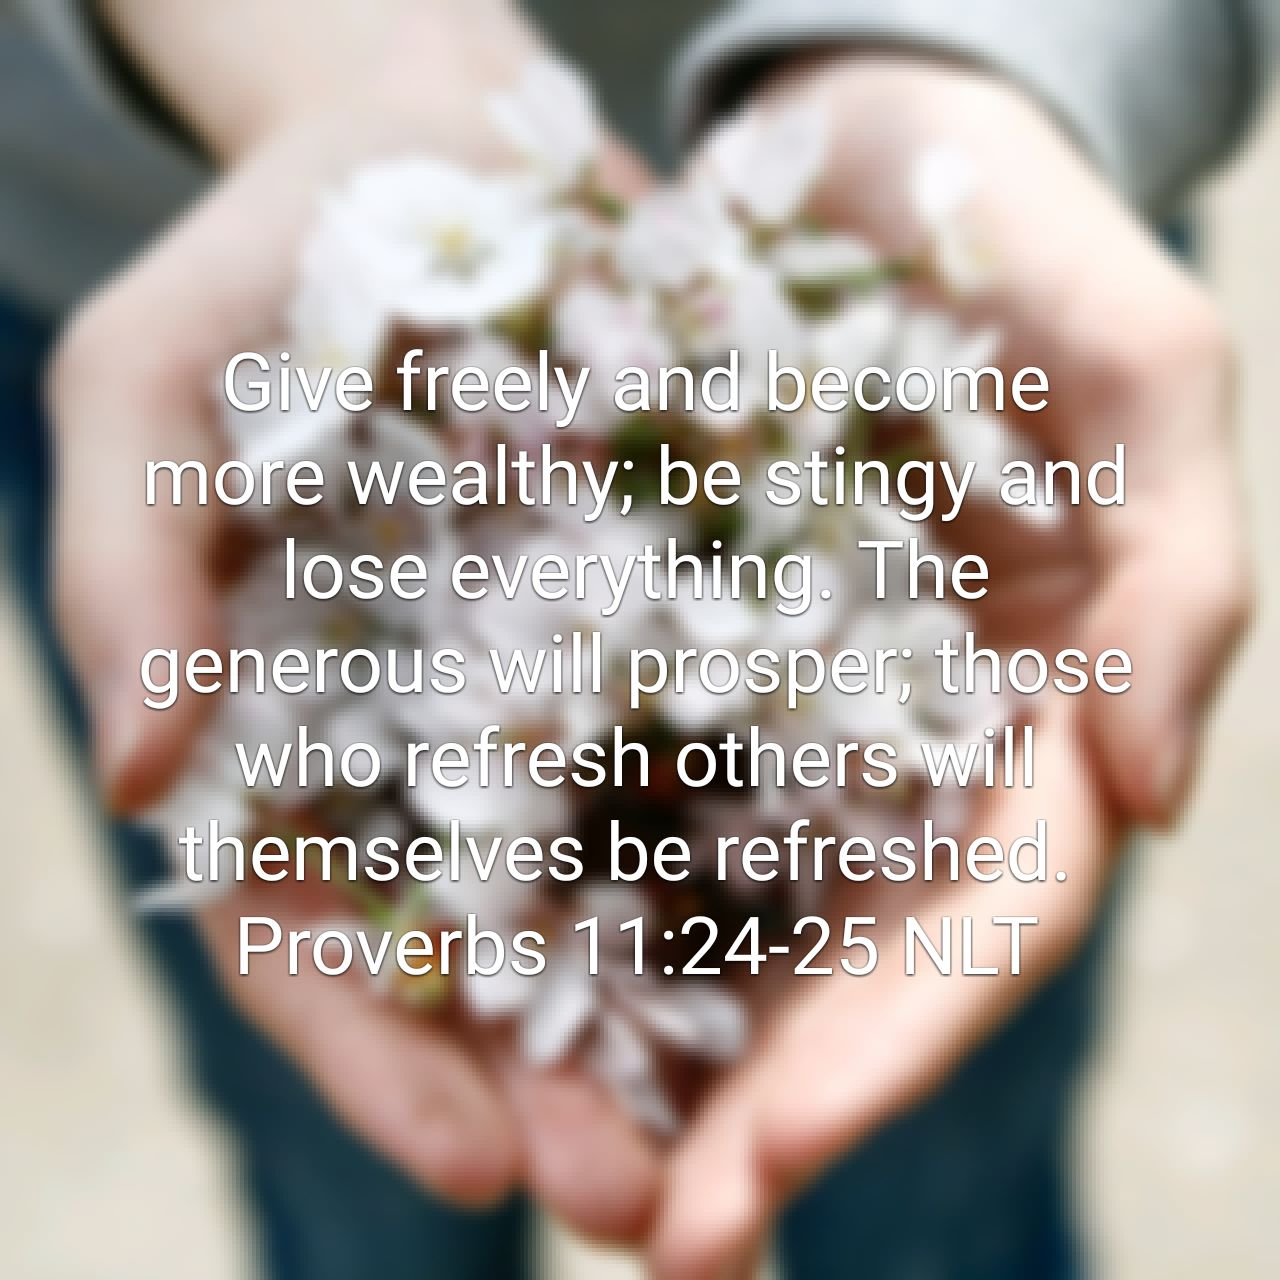 Give freely and become more wealthy; be stingy and lose everything. The generous will prosper; those who refresh others will themselves be refreshed. - Proverbs 11:24‭-‬25 NLT